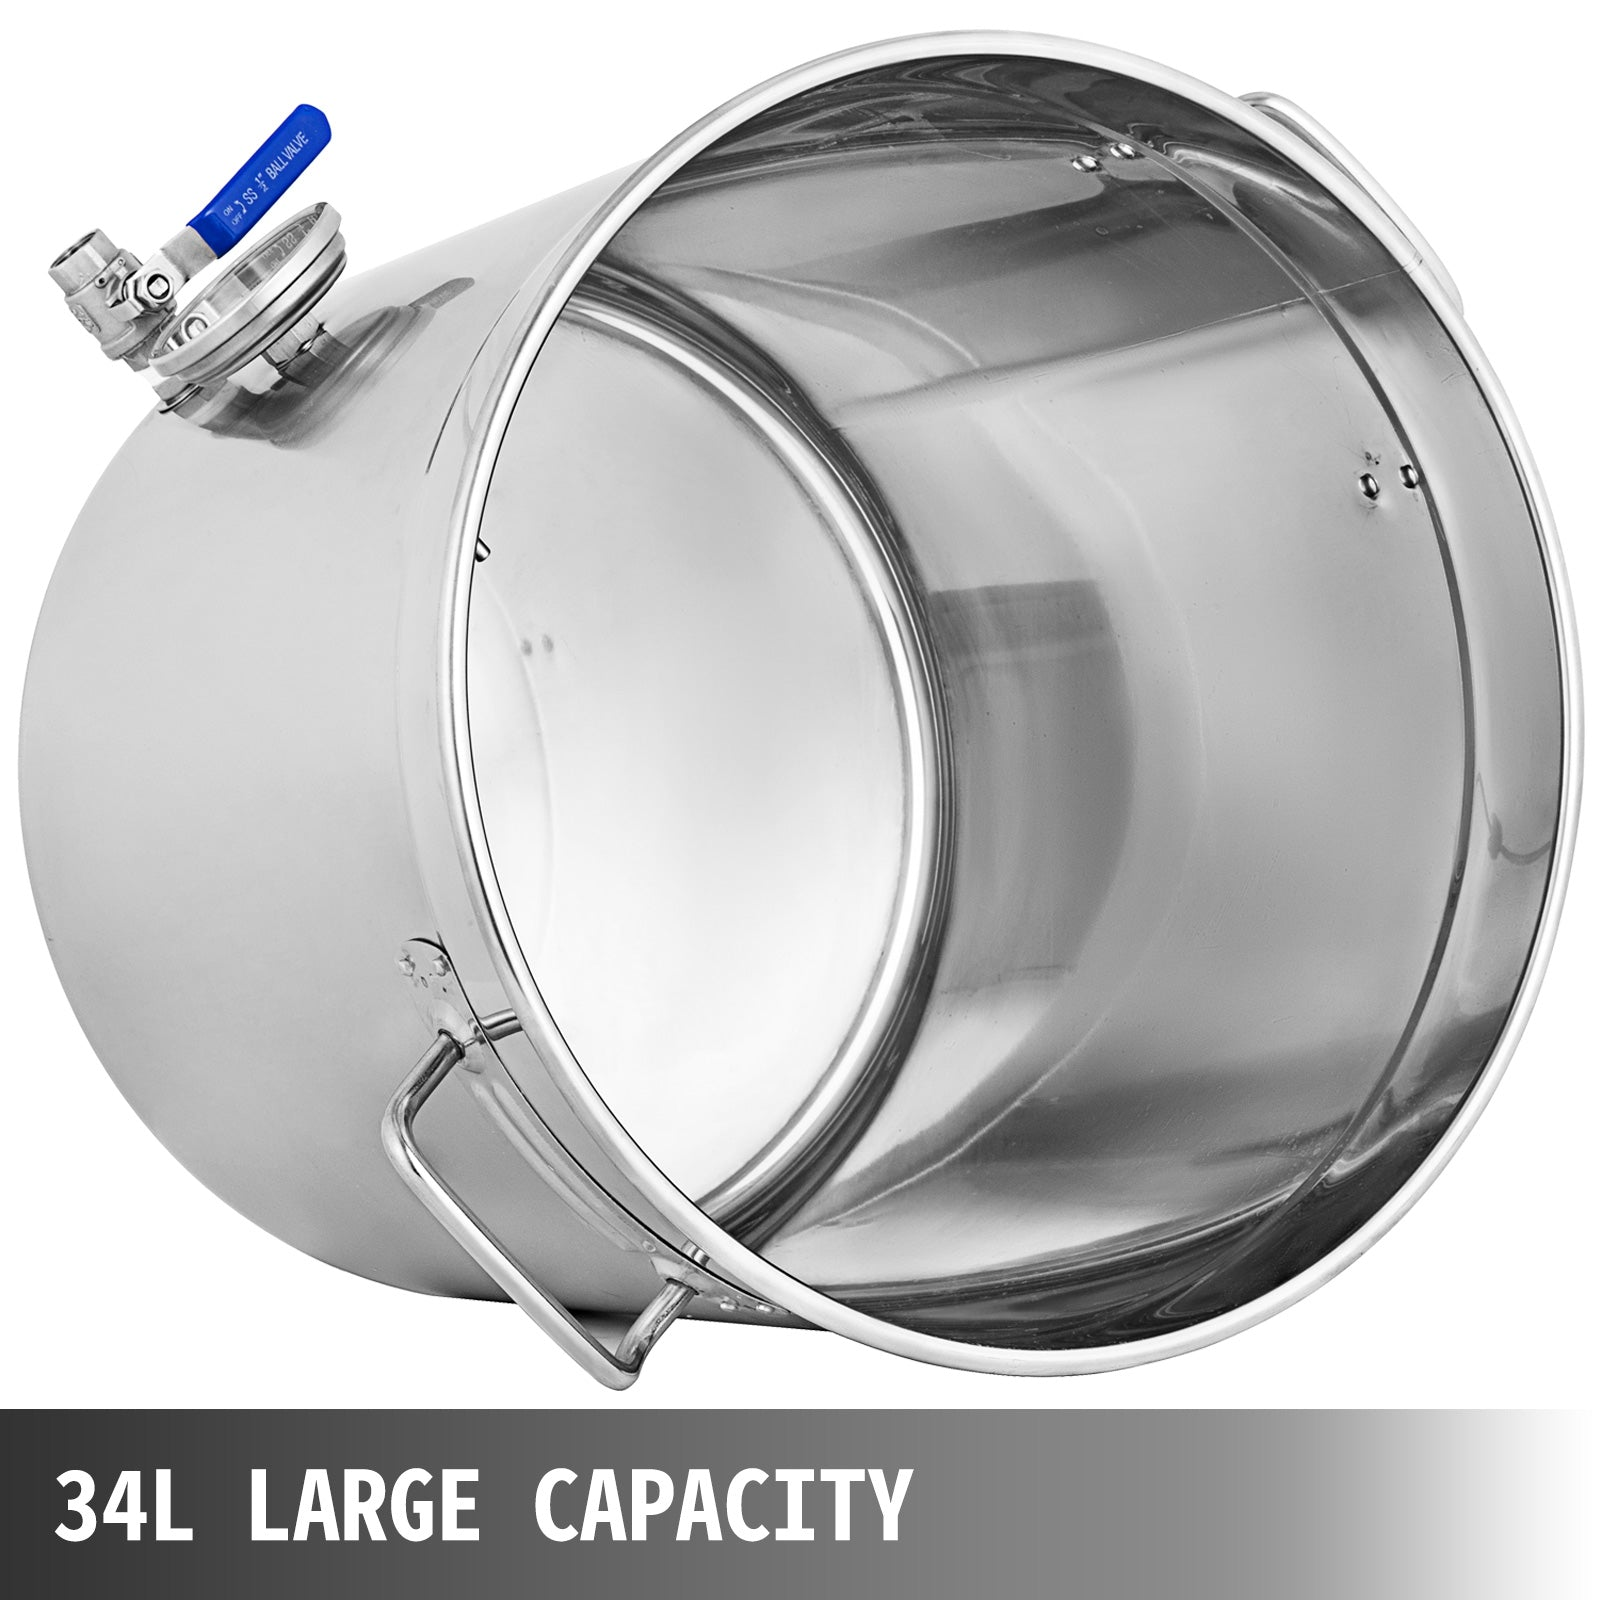 37 Qt Stainless Steel Stock Pot + Thermometer 9.25 Gallon Brew Kettle Homebrew